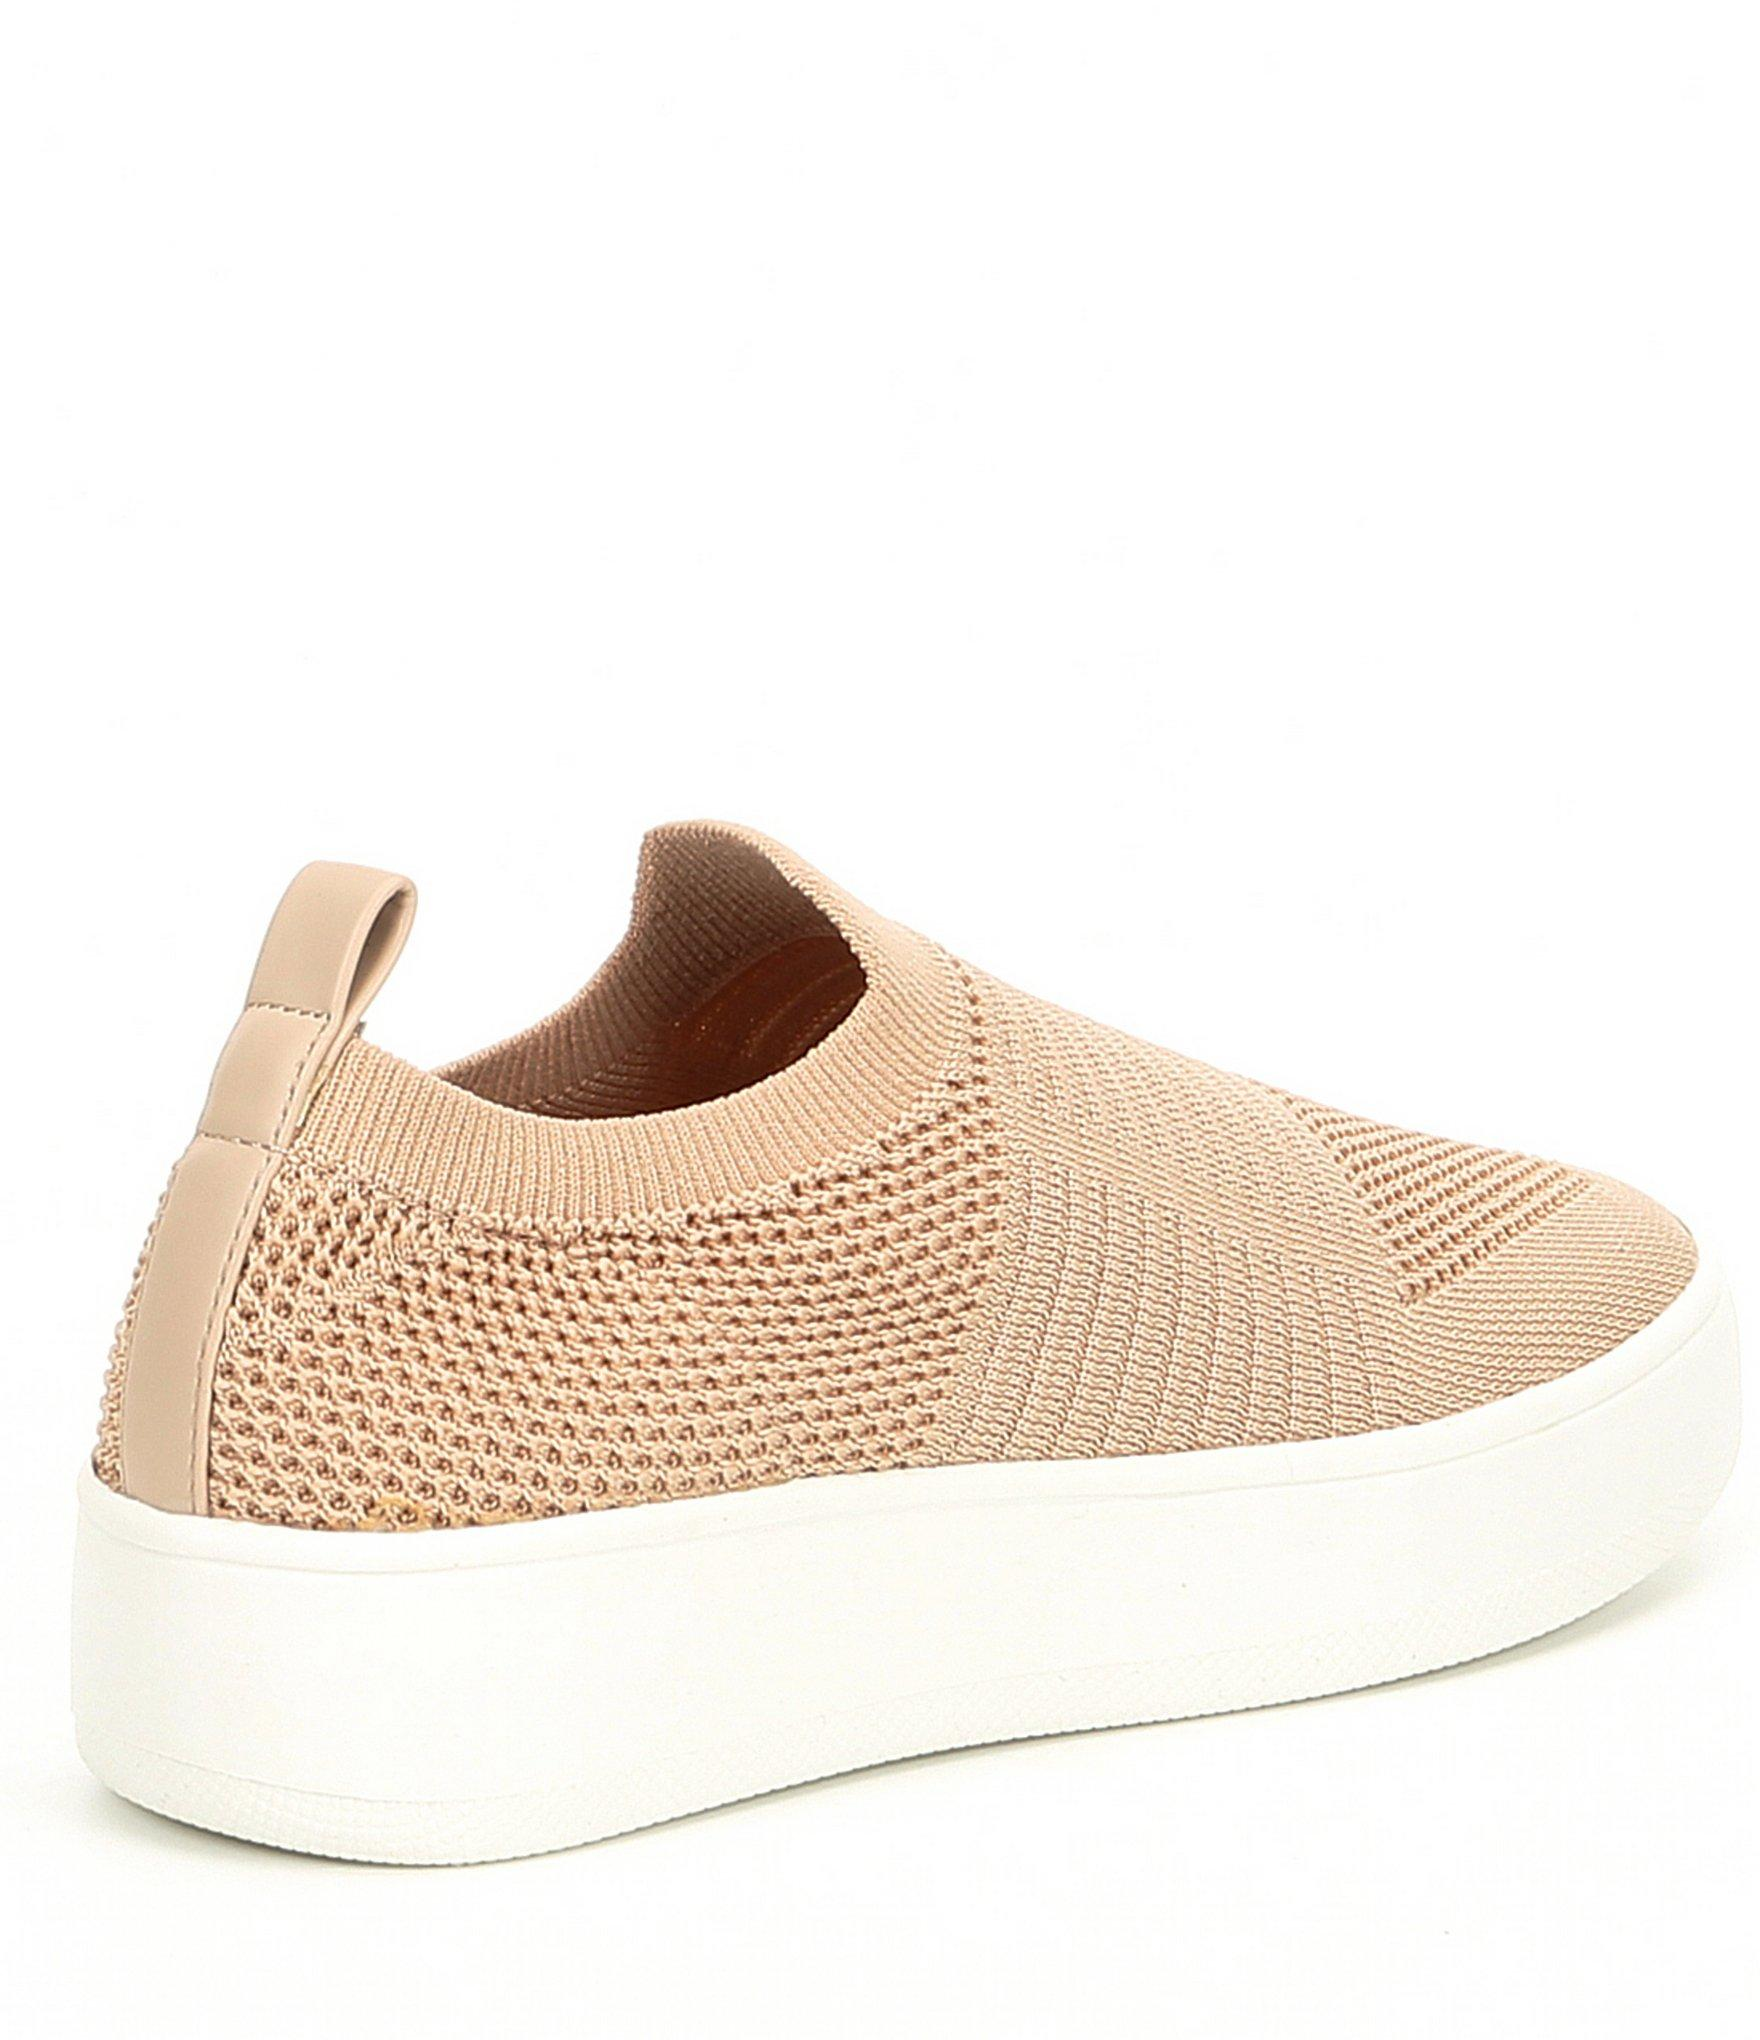 269df62eda2 Lyst - Steve Madden Beale Stretch Knit Sneakers